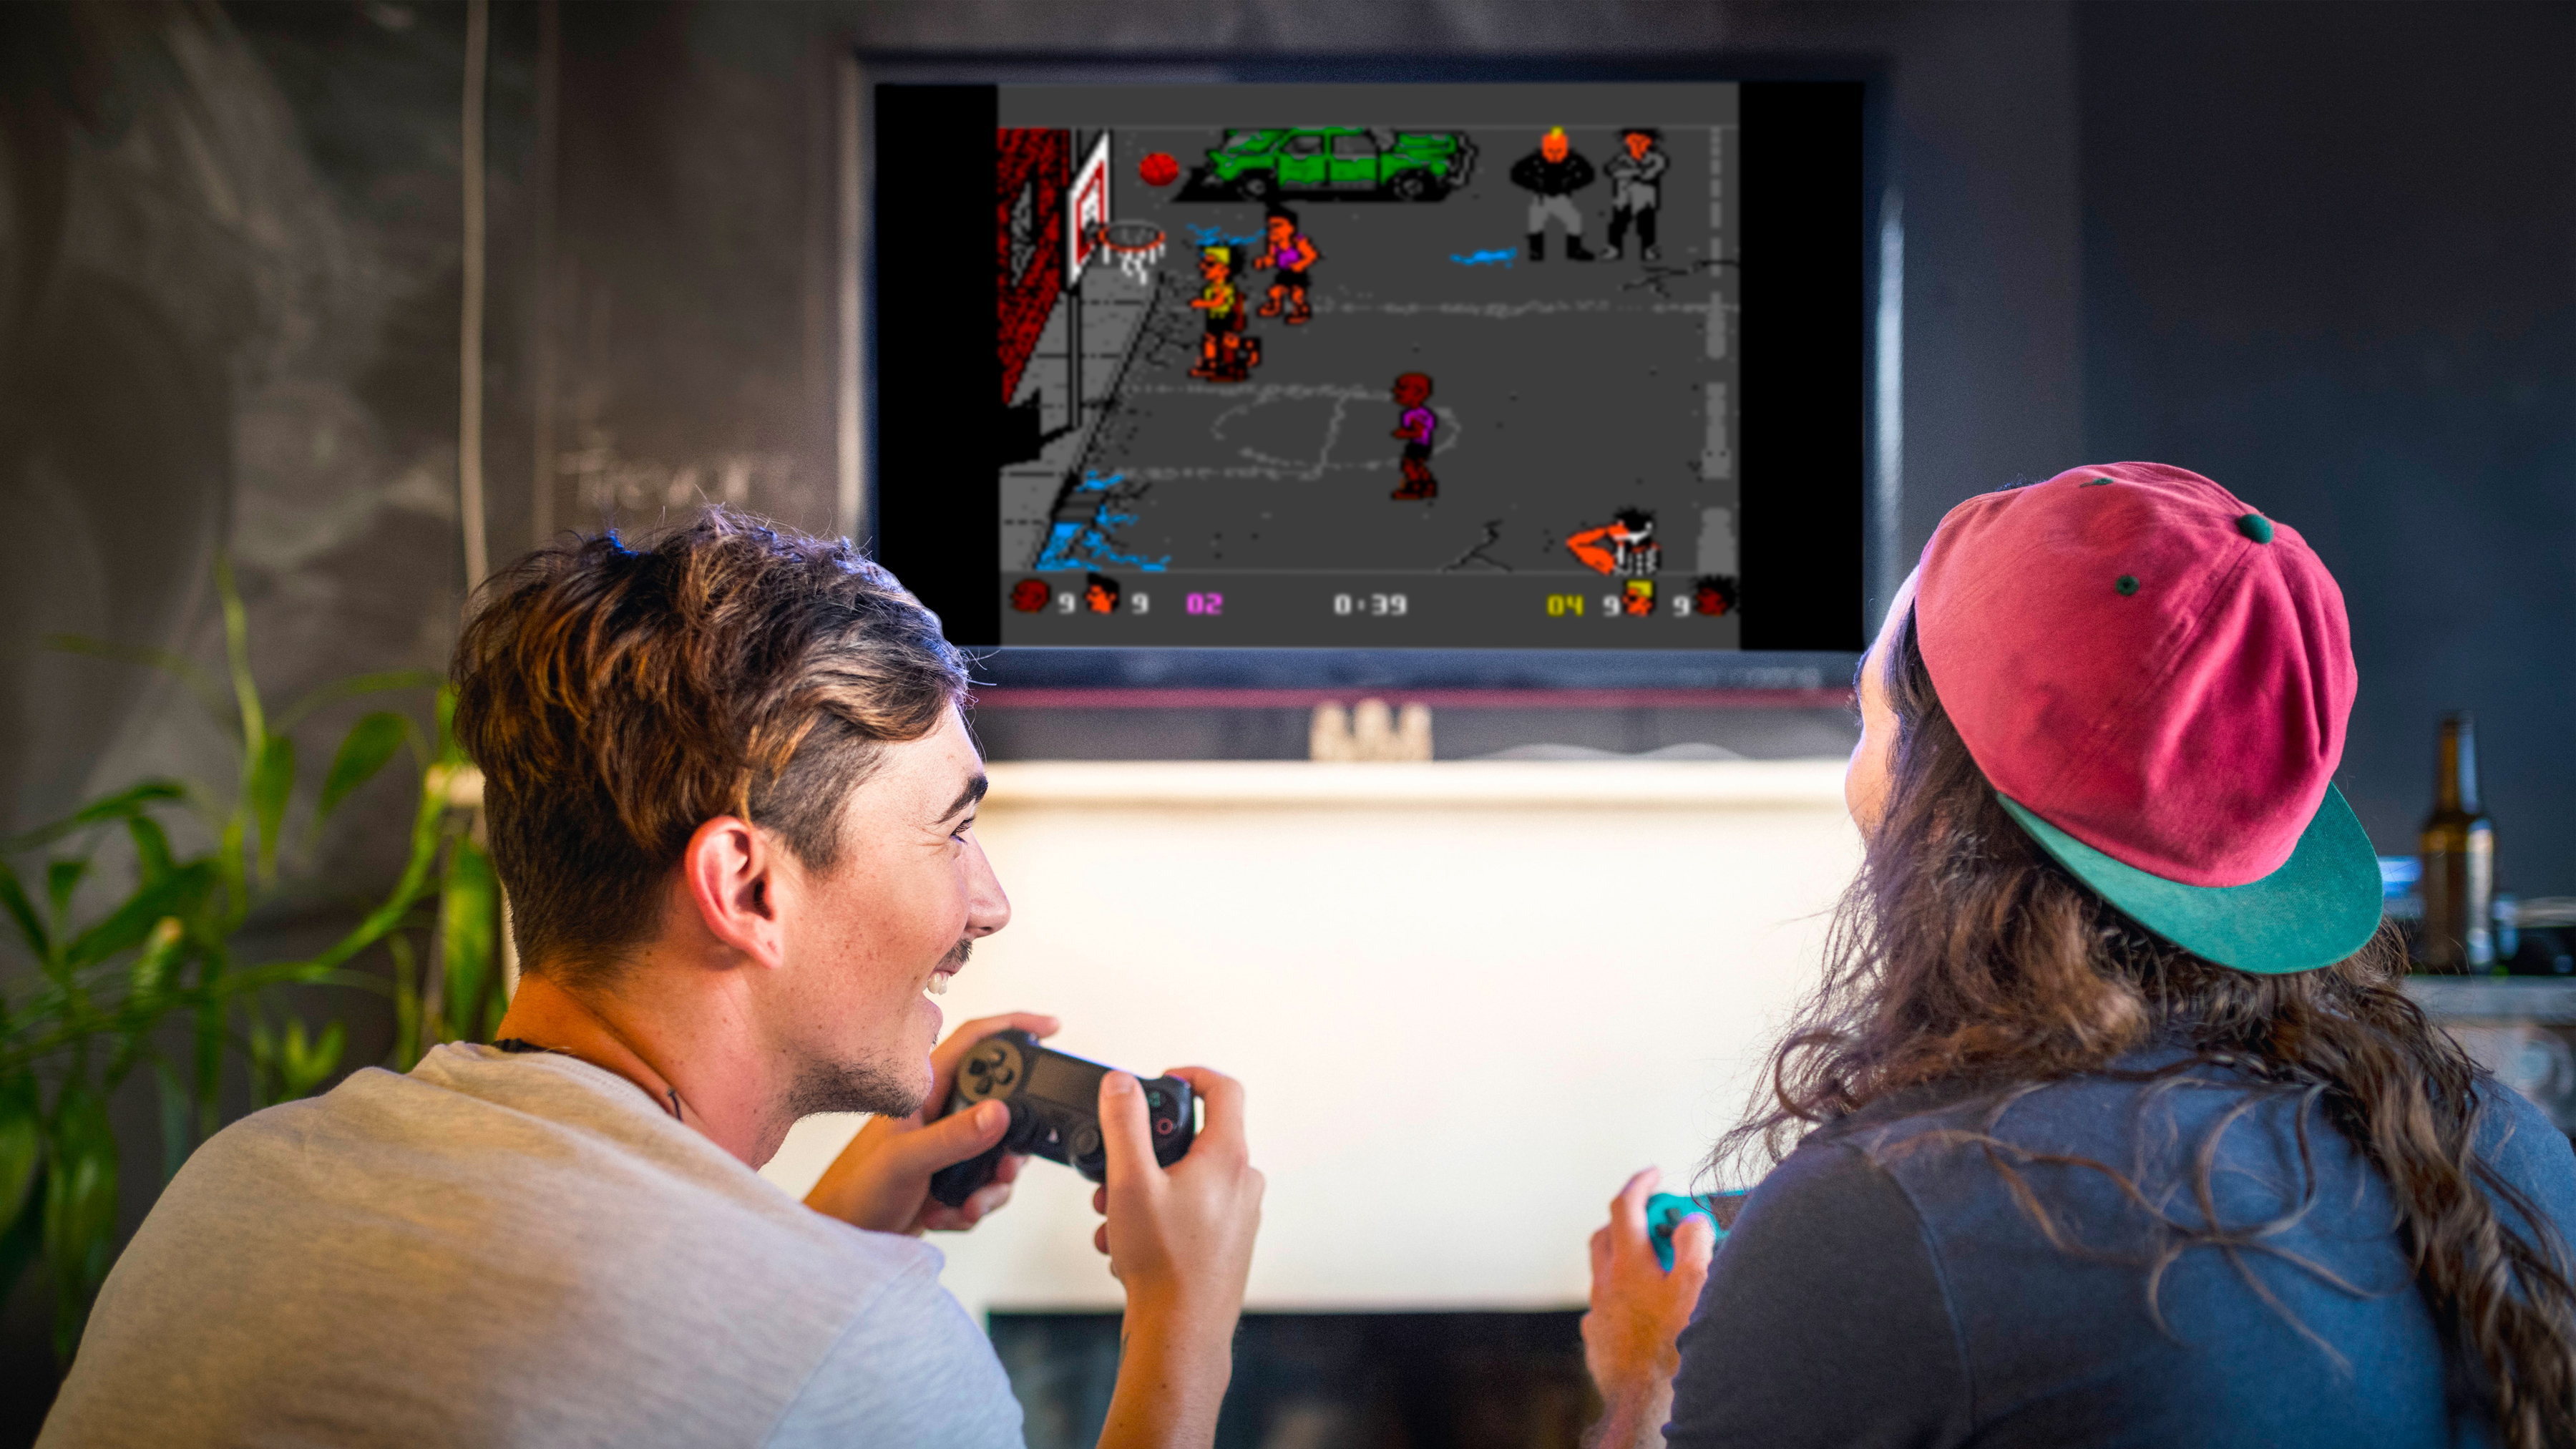 Plex Launches Plex Arcade With Retro Games to Play